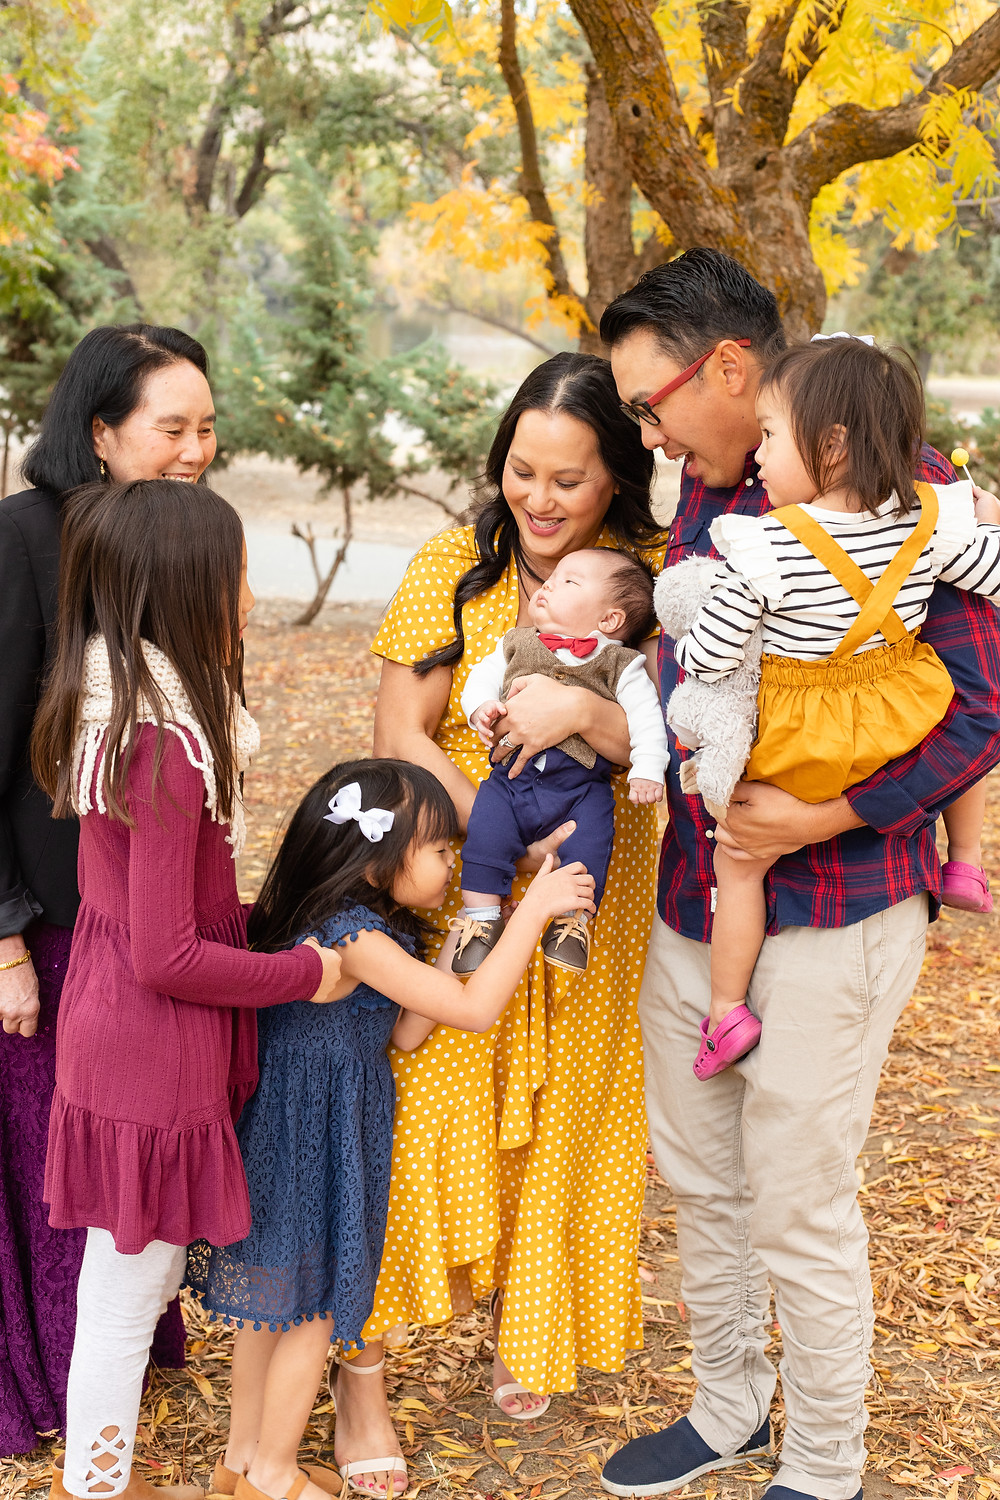 A family lifestyle session by Ashley Norton Photography in Fresno, CA.